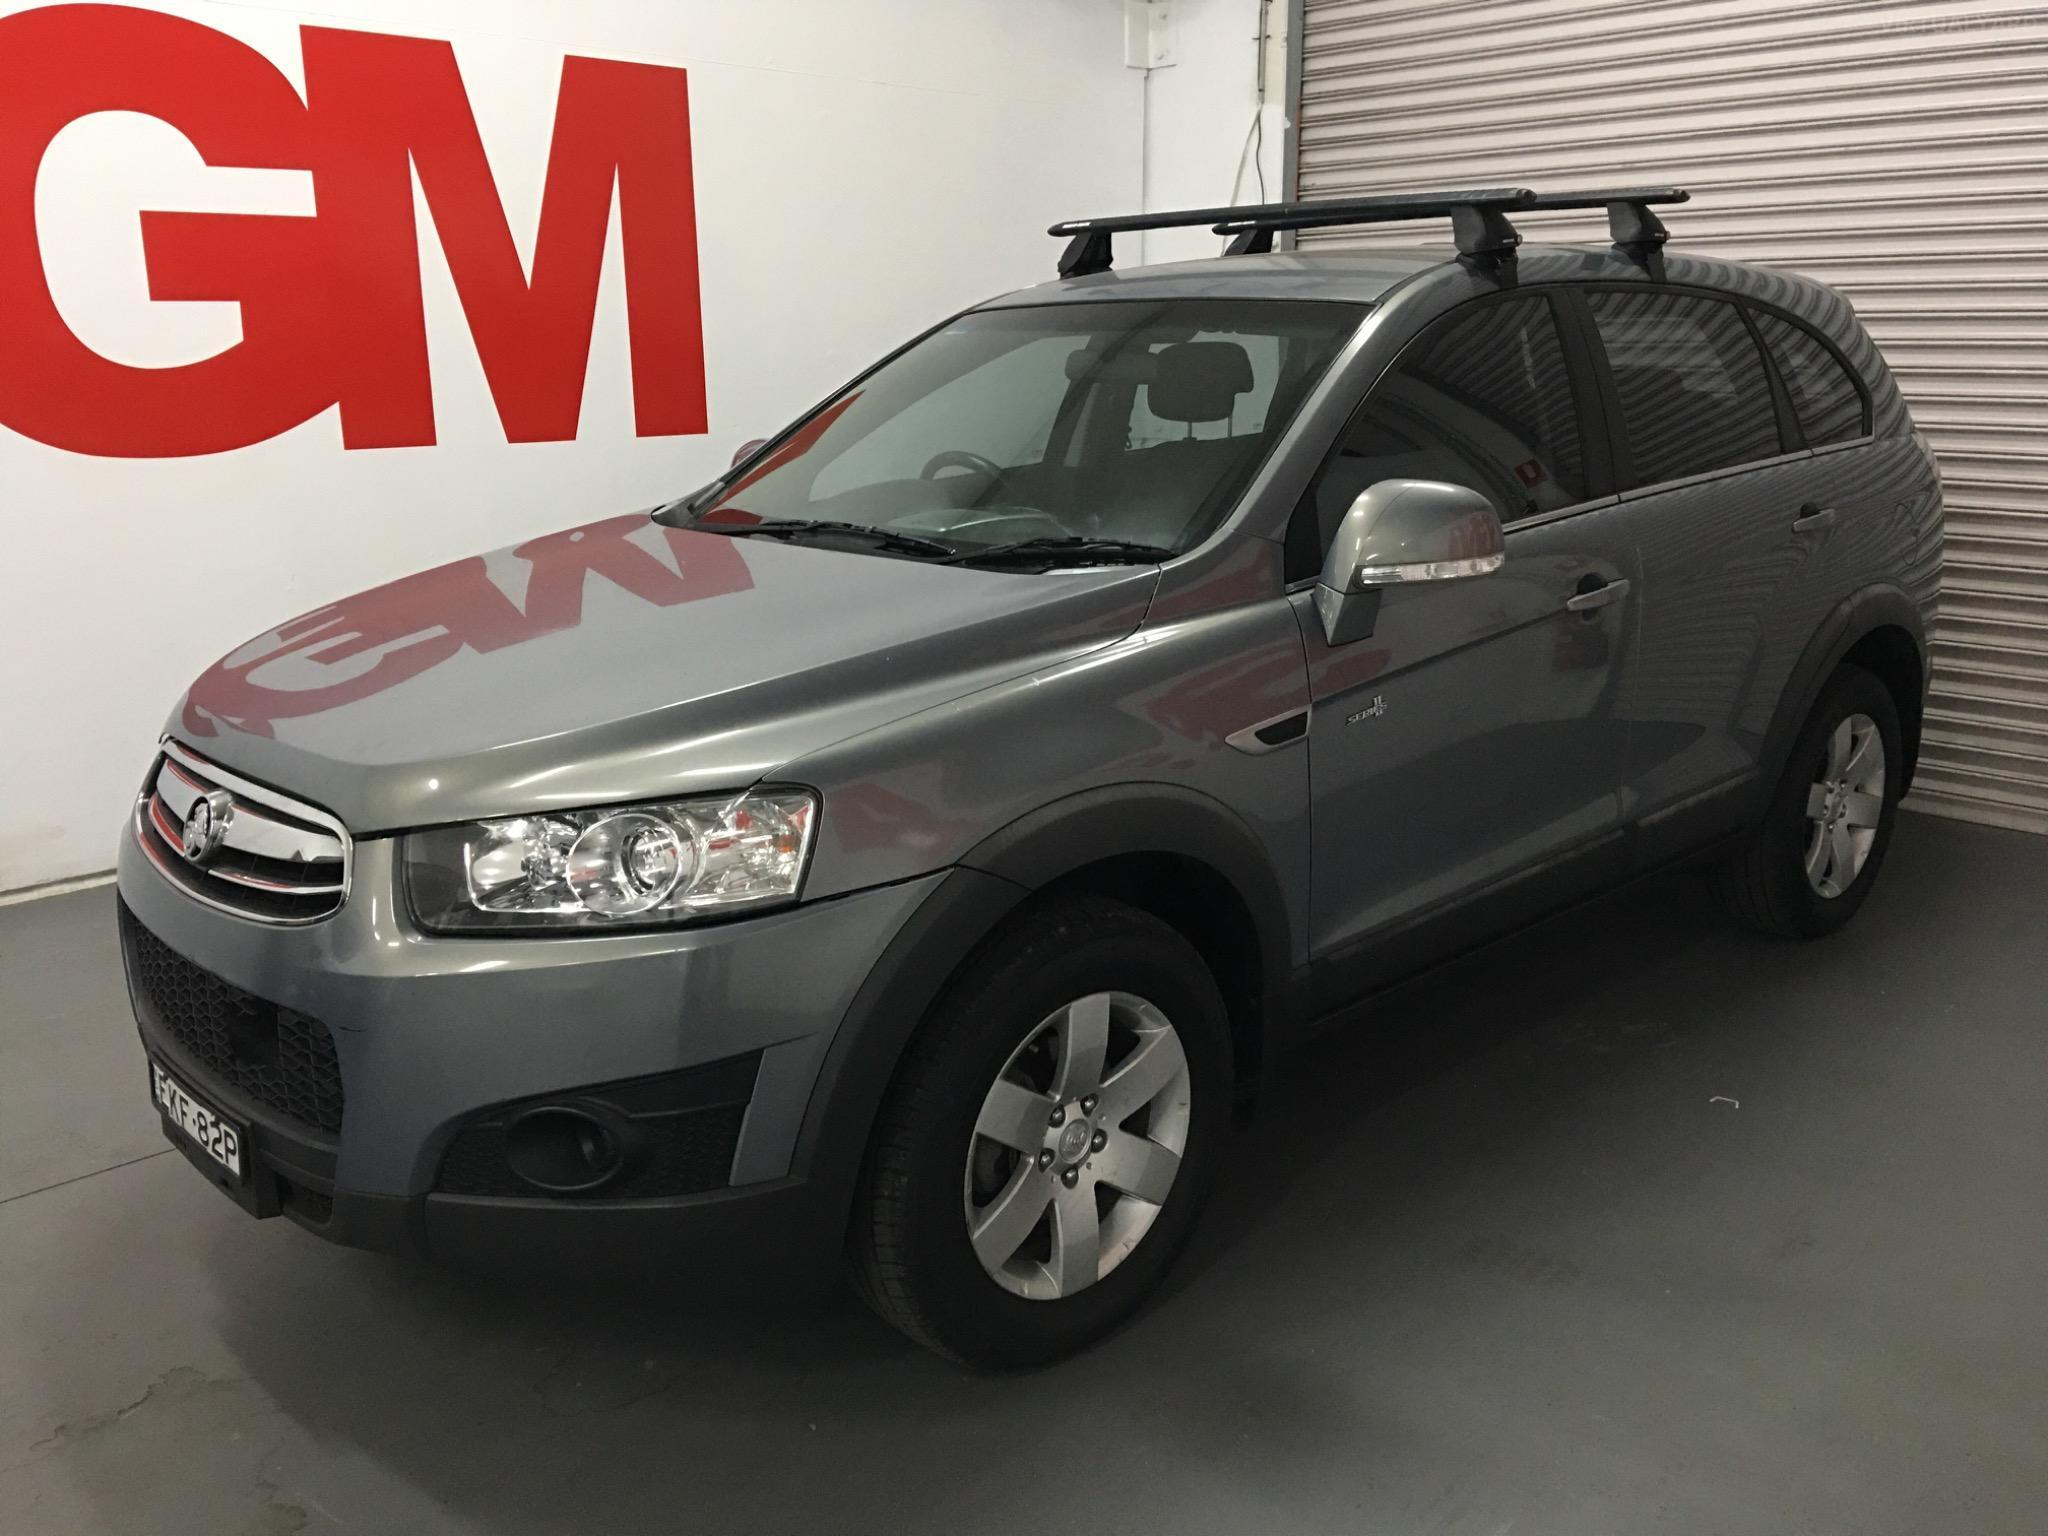 2011 Holden Captiva CG Series II 7 SX Wagon 7st 4dr Spts Auto 6sp 2.2DT (FWD) Picture 8